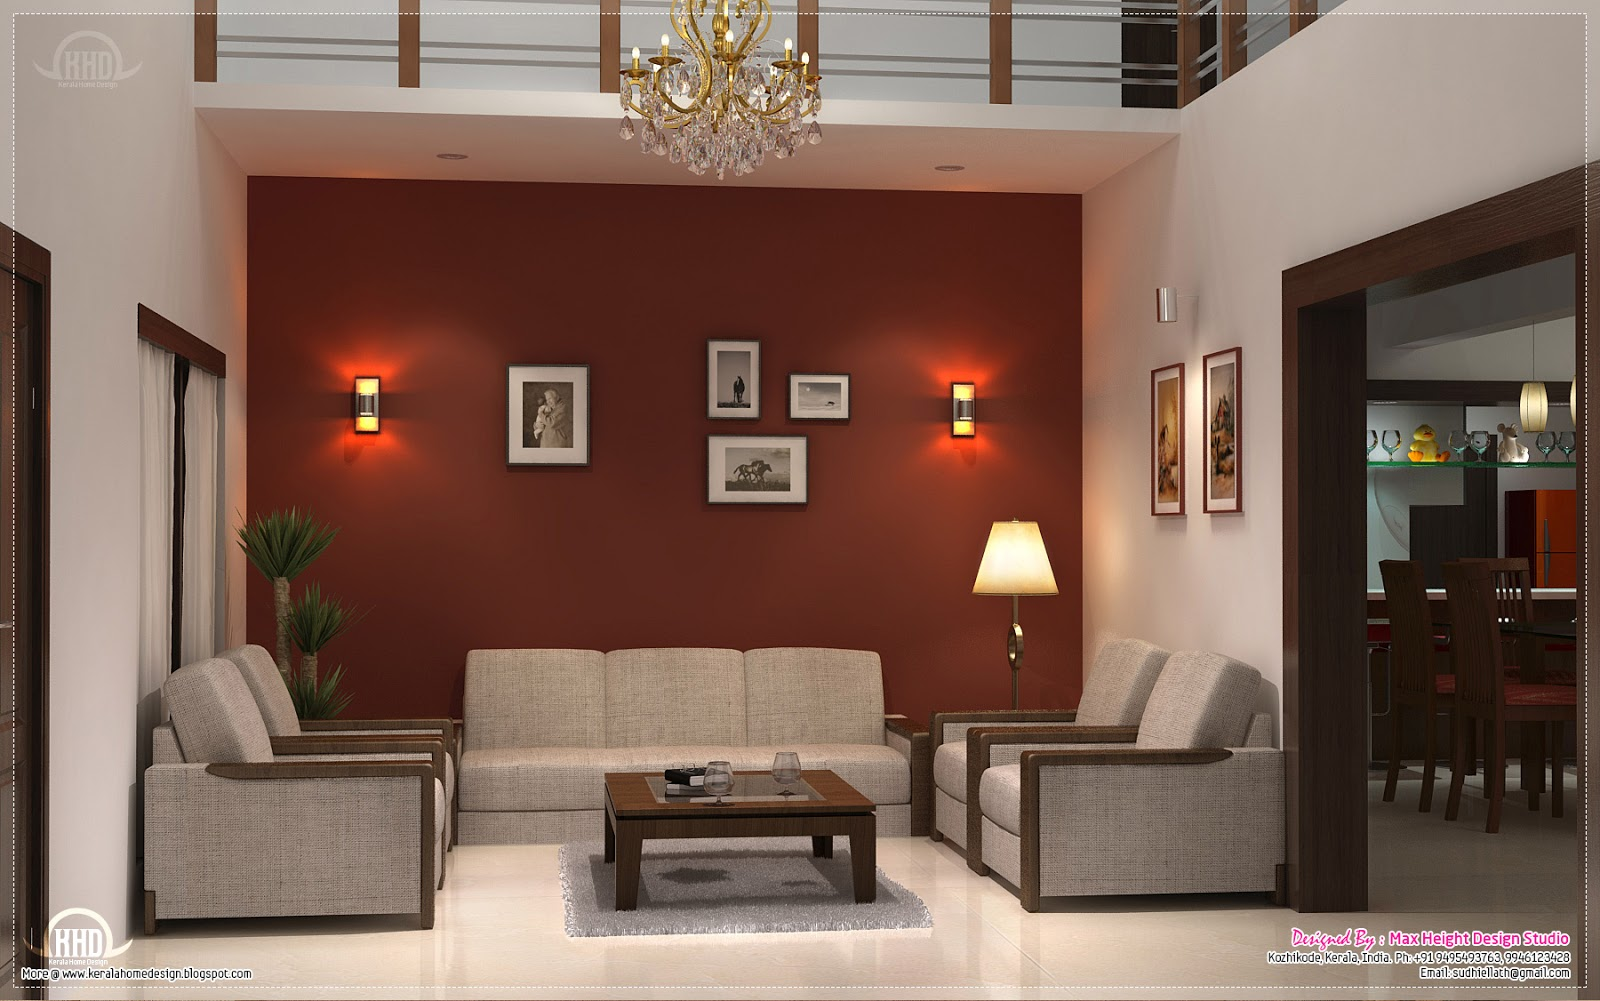 Home interior design ideas kerala home design and floor for House interior ideas